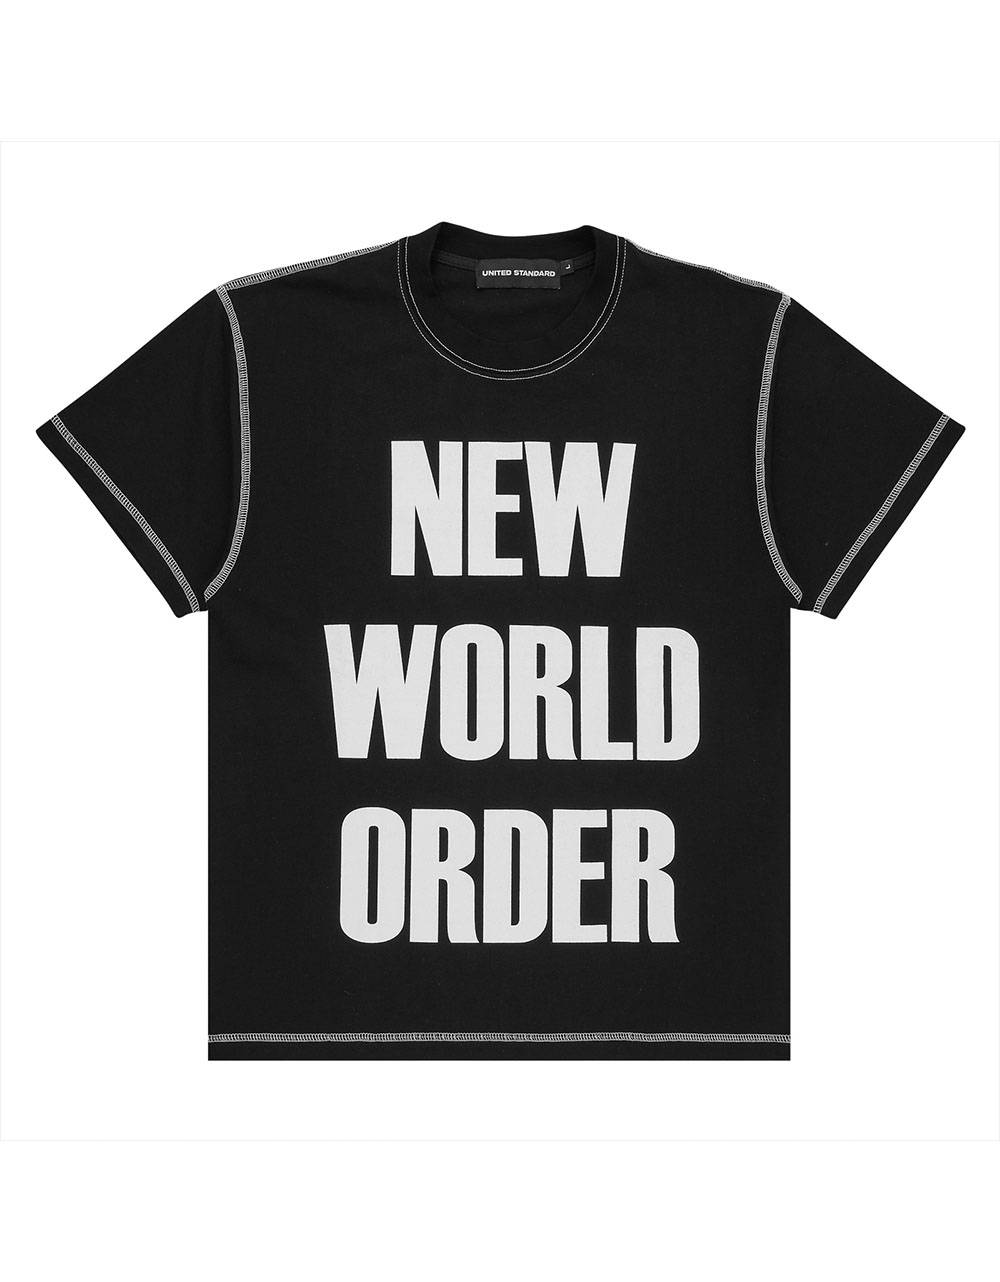 United Standard New world order tee - black United Standard T-shirt 61,48 €